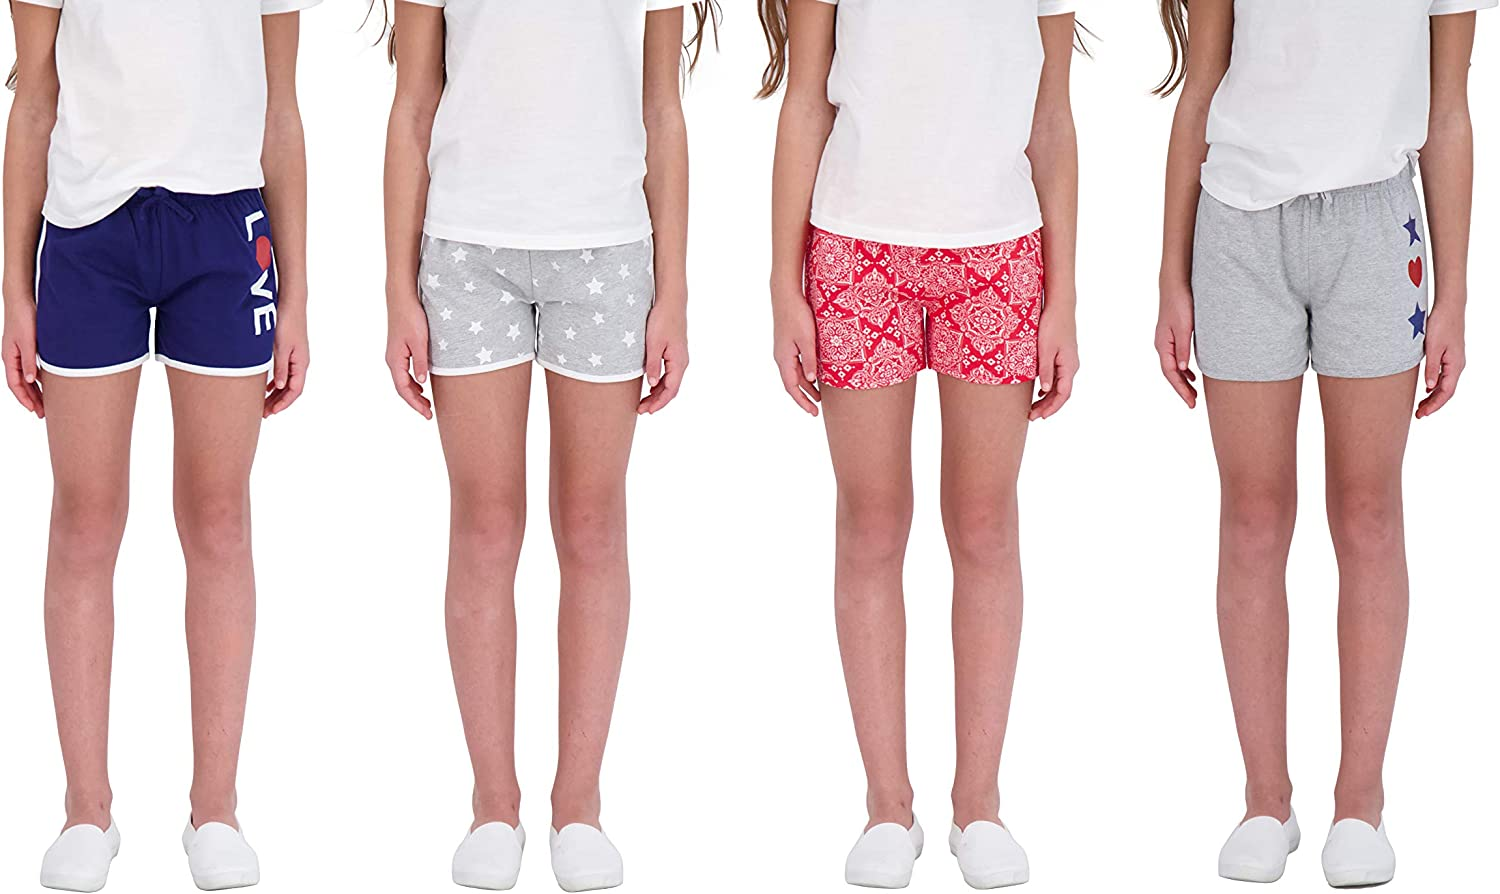 Star Animer and price revision Ride Sweet Butterfly 4PK Athletic Girls Shorts Some reservation Dolphin Yog